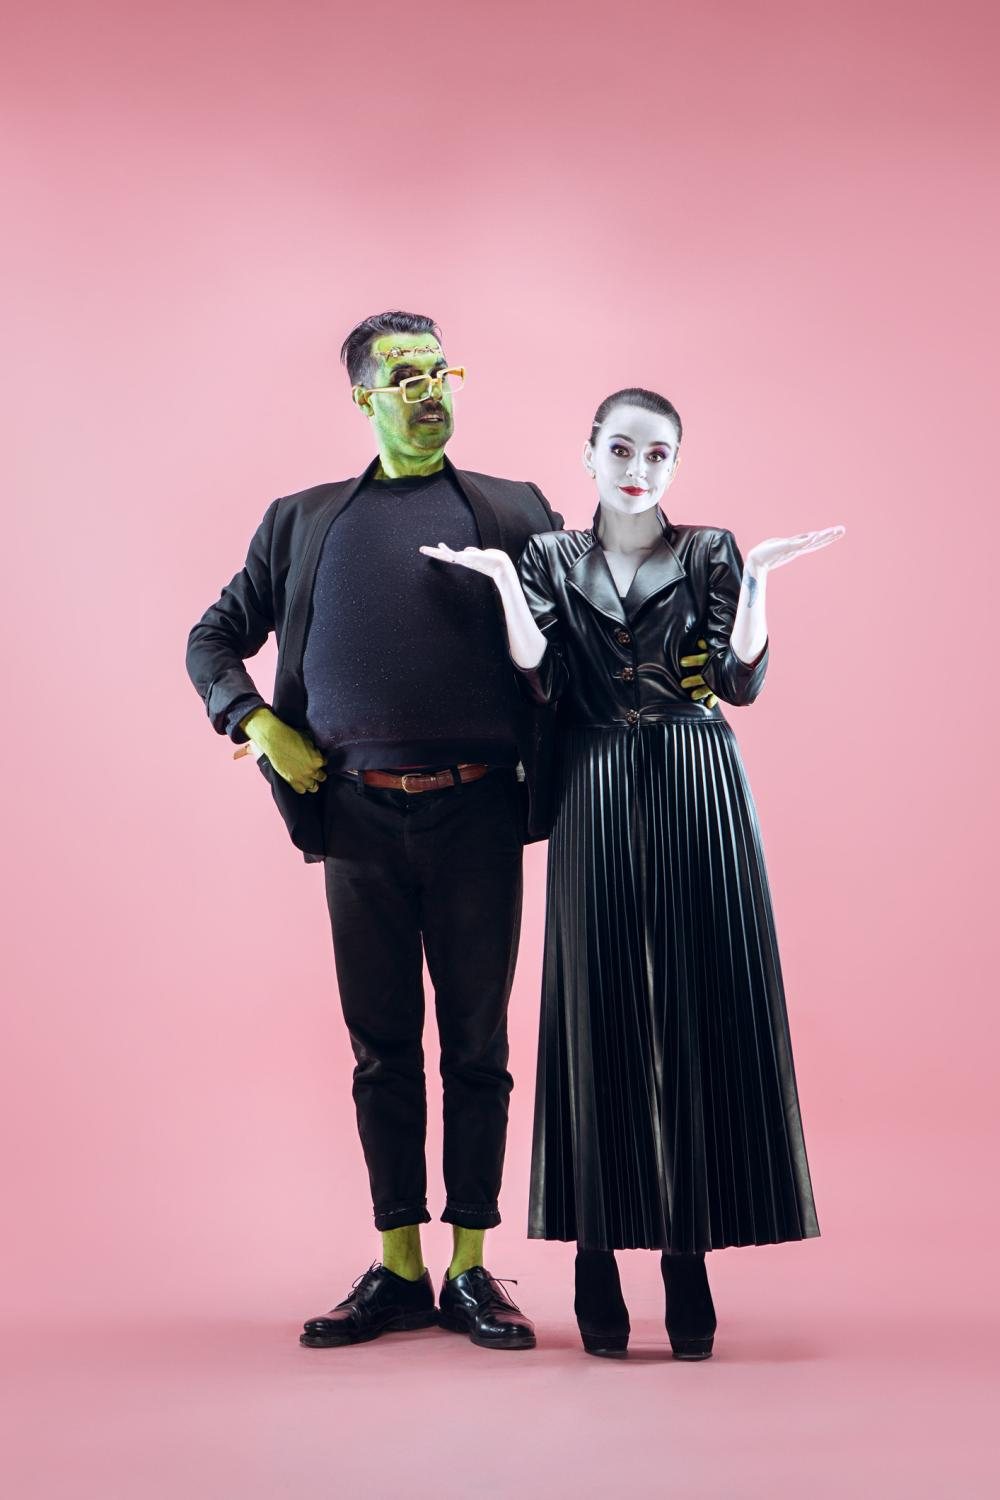 Frankenstein's monster and his bride scary halloween costumes